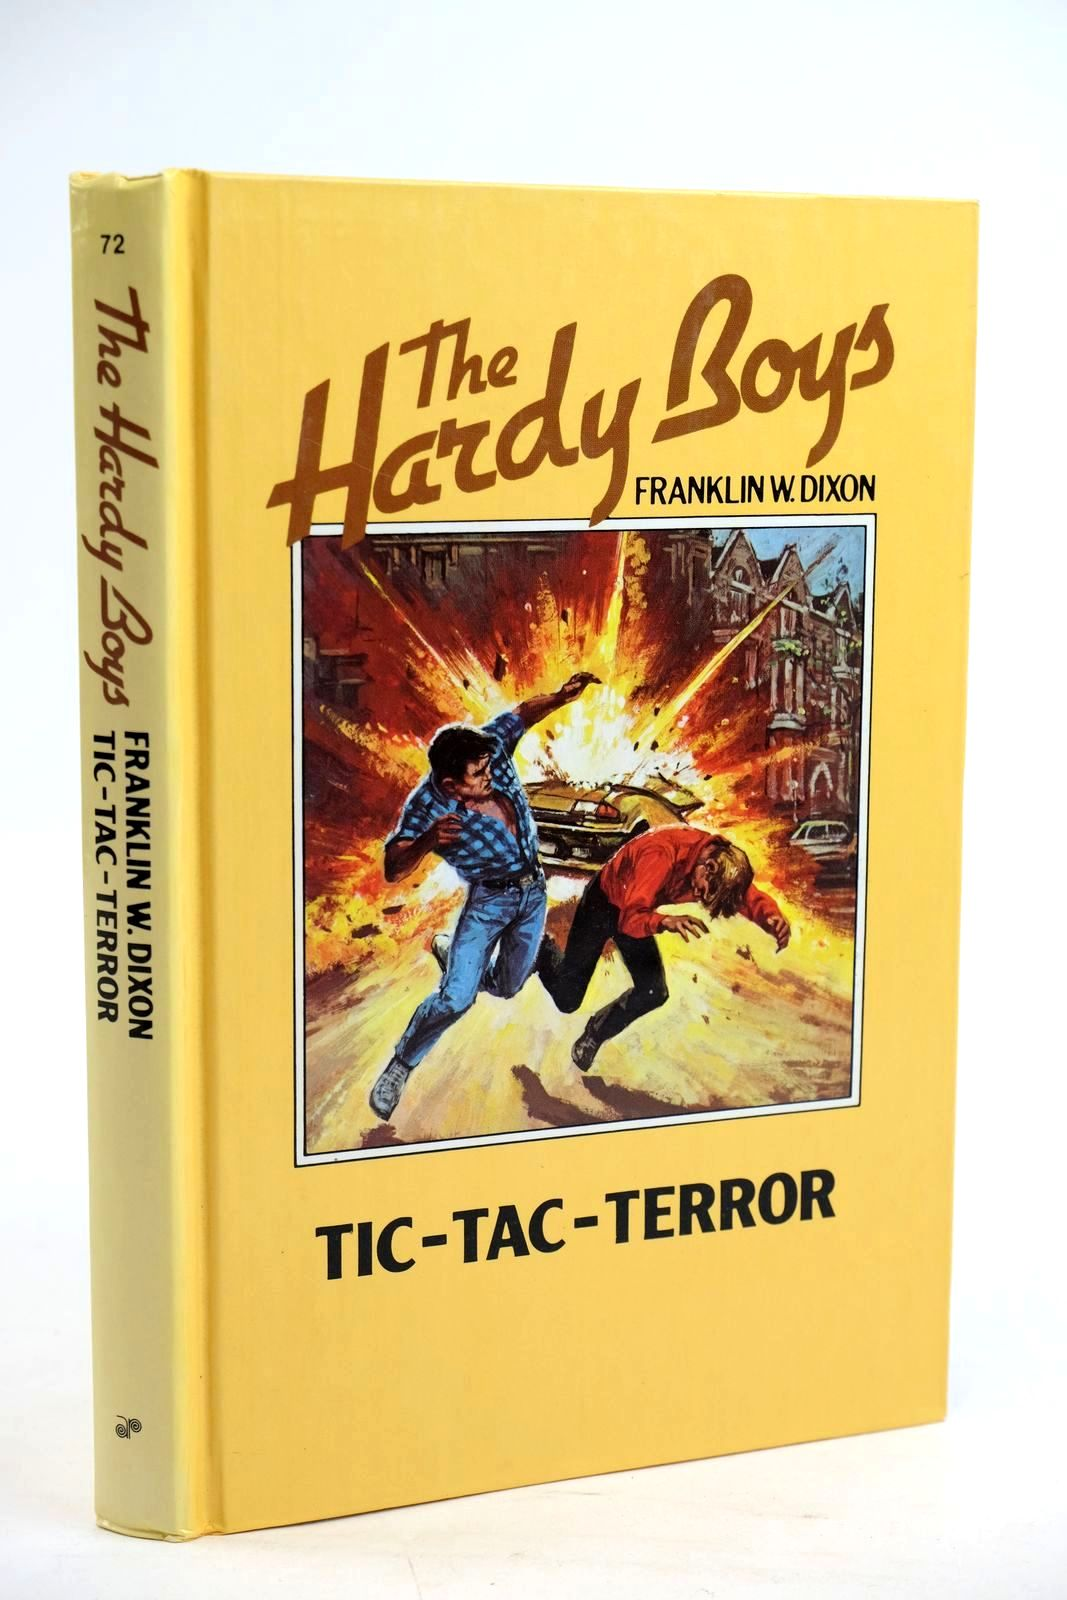 Photo of TIC-TAC-TERROR written by Dixon, Franklin W. illustrated by Morrill, Leslie published by Angus & Robertson Publishers (STOCK CODE: 1319542)  for sale by Stella & Rose's Books